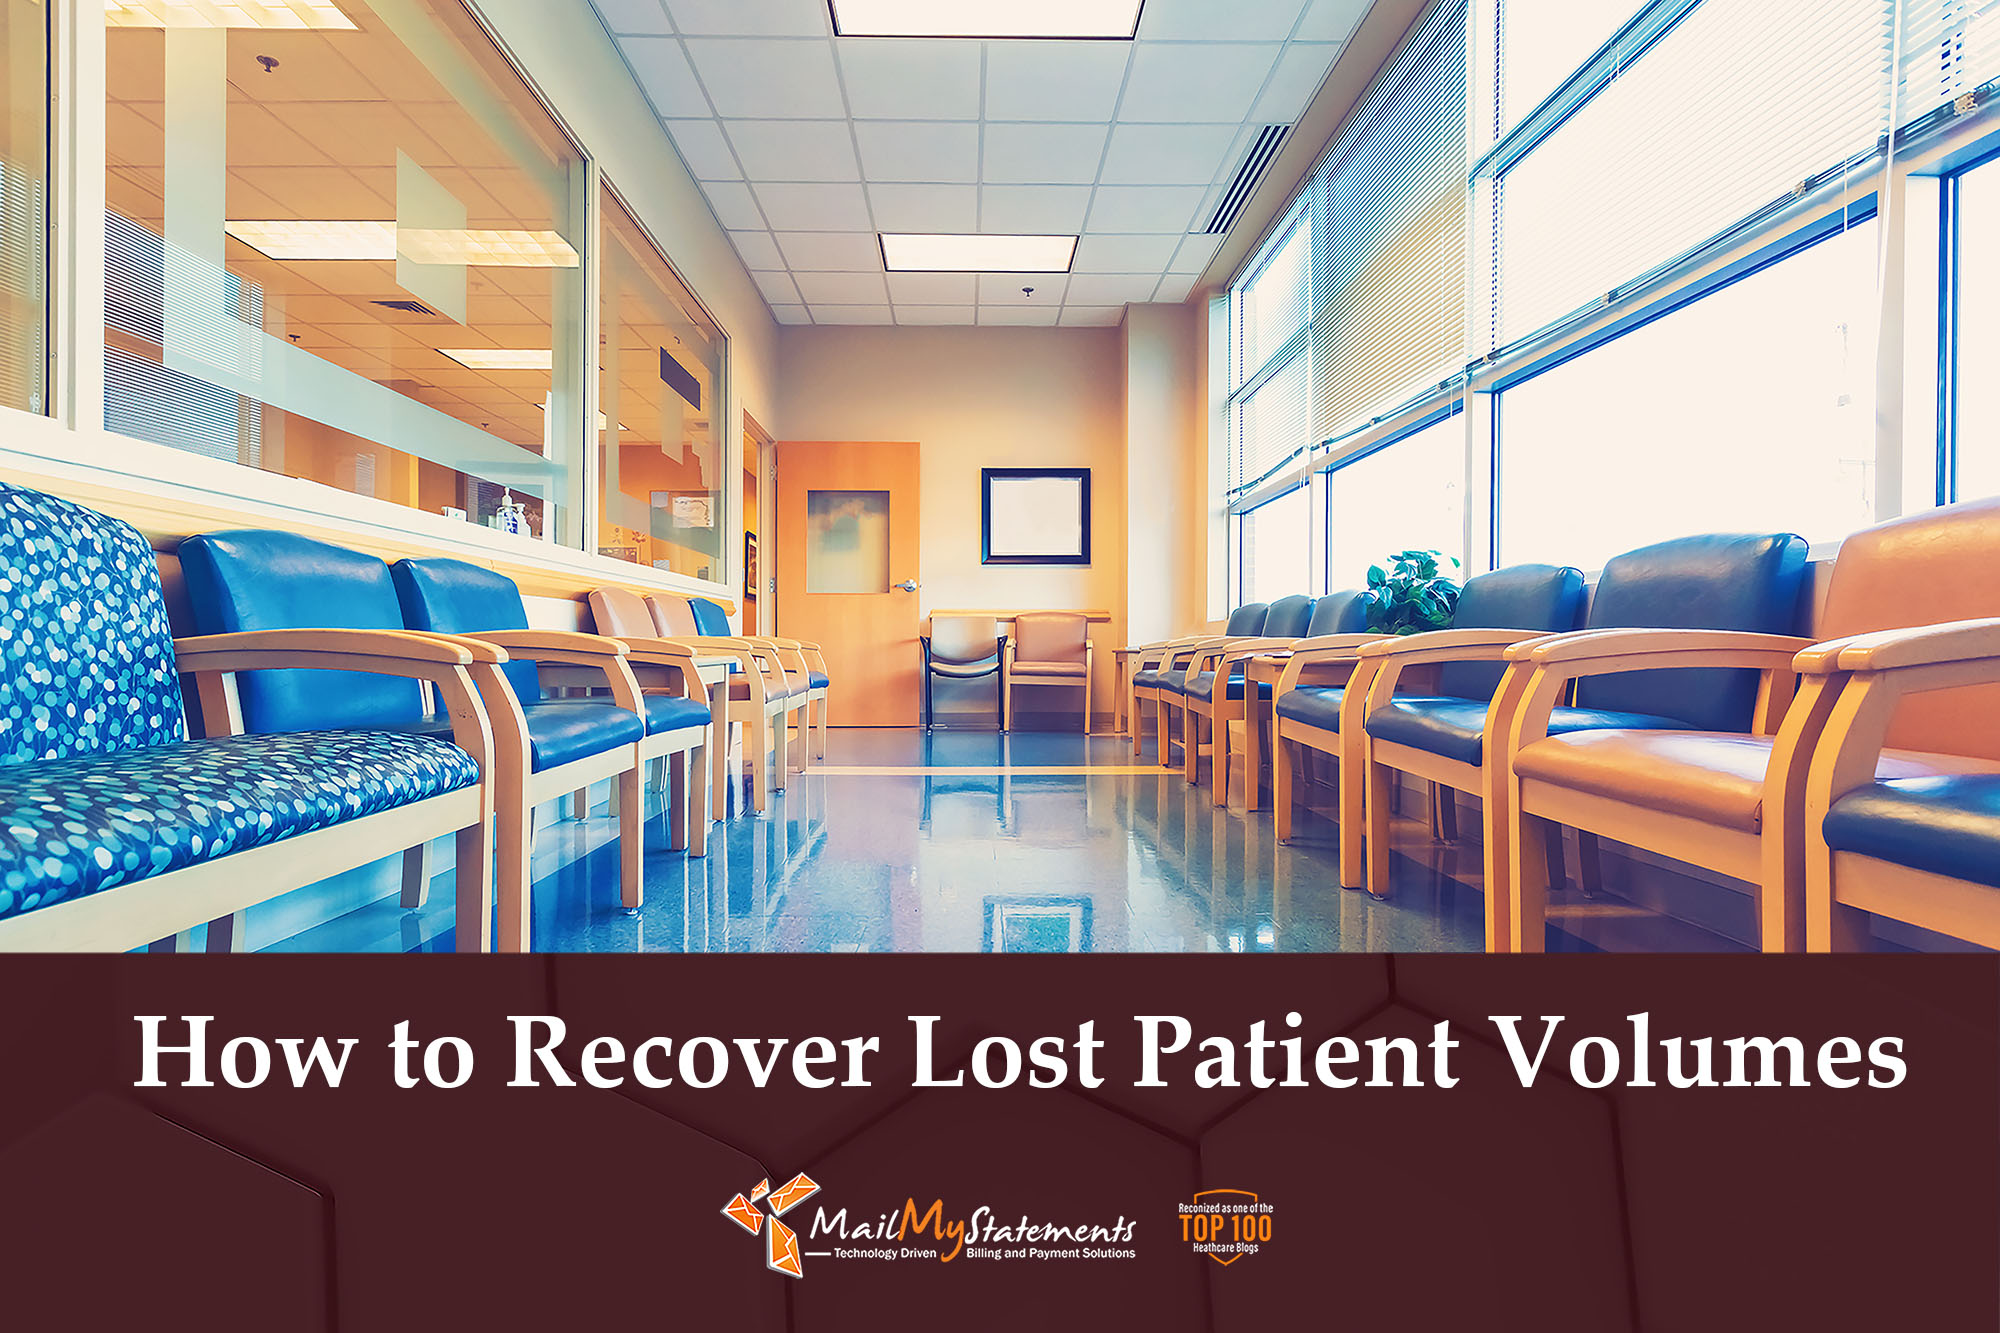 How to Recover Lost Patient Volumes